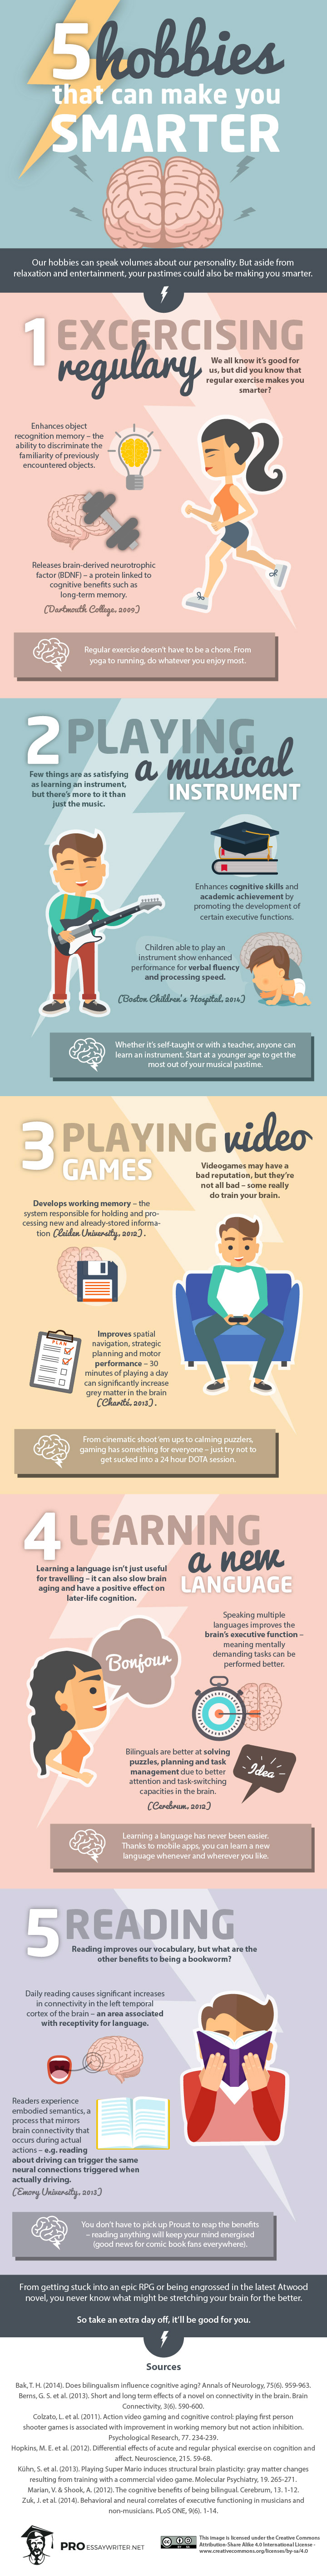 5 hobbies that can make you smarter infographic the muse infographic courtesy of entrepreneur photo of guitar courtesy of shutterstock